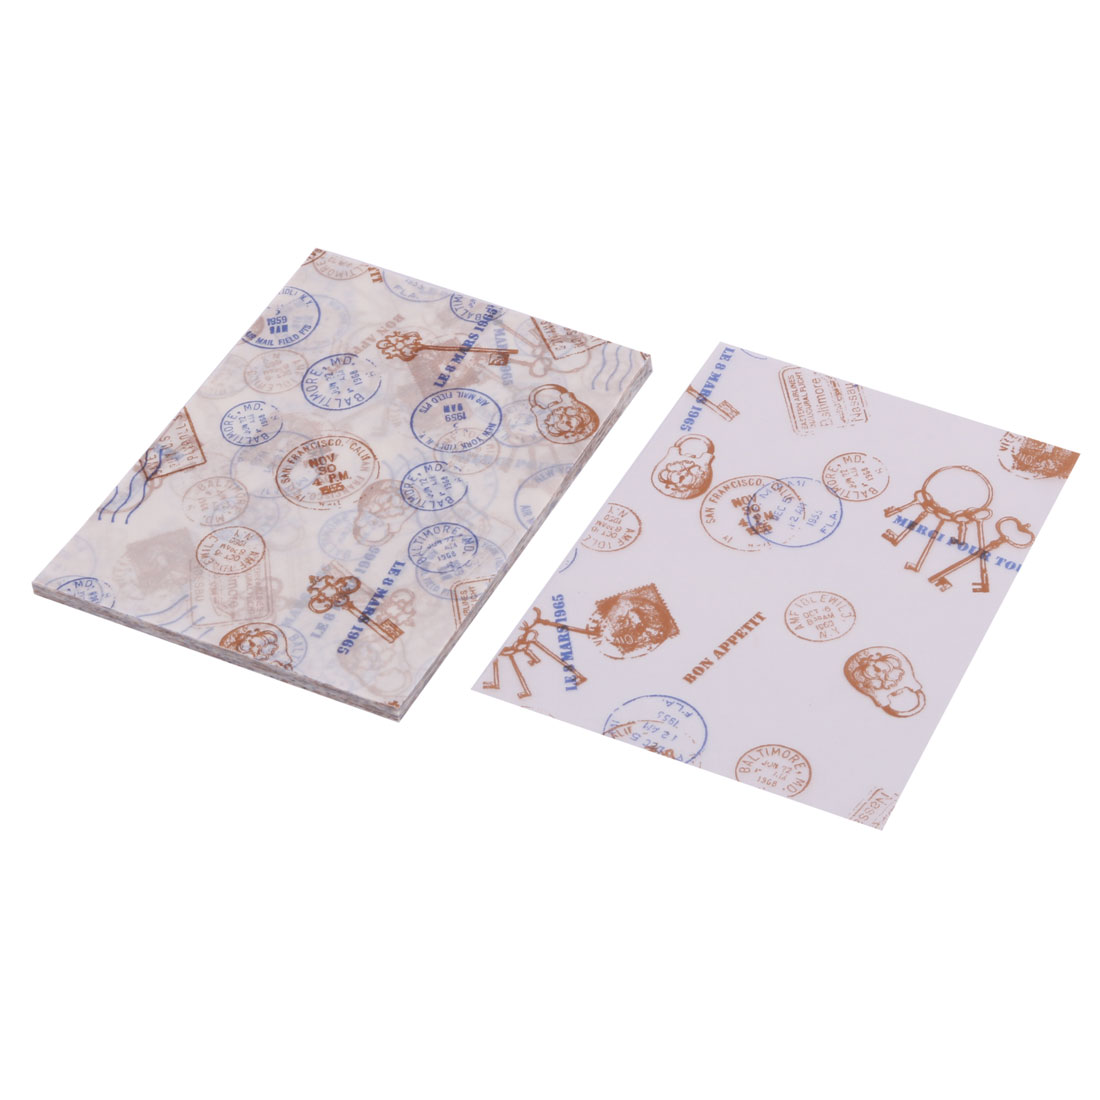 Home Party Cookies Sugar Chocolate Holder DIY Packaging Wrapping Paper 100 Pcs